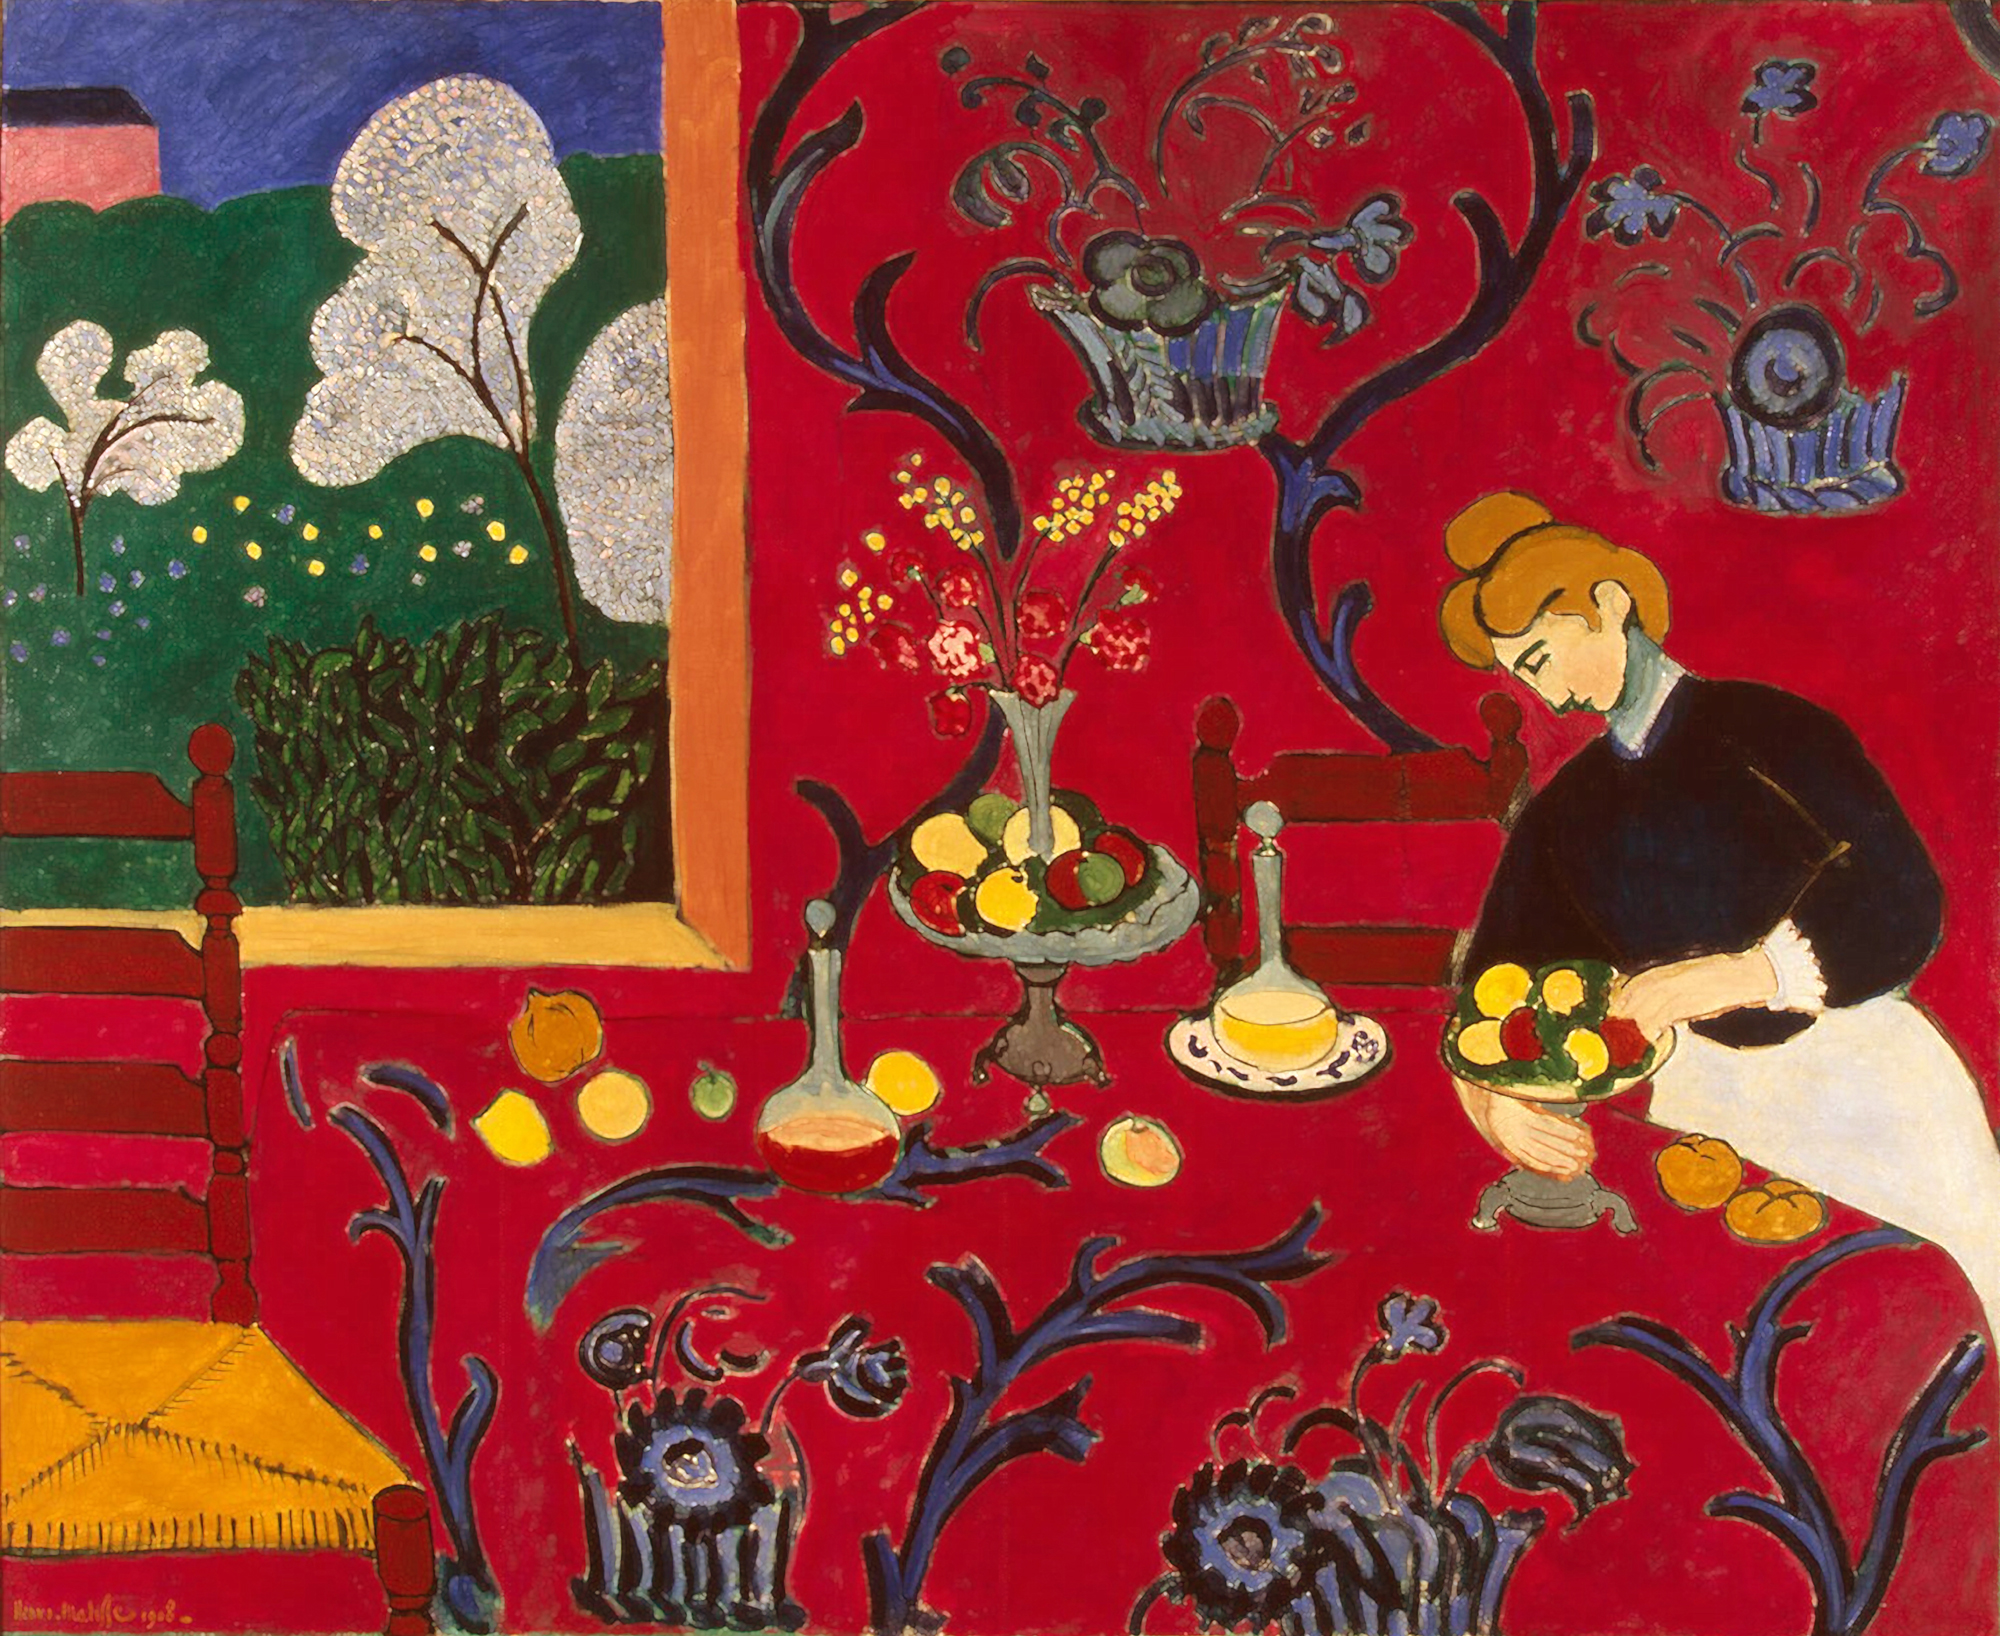 The Red Room, Henri Matisse, 1908